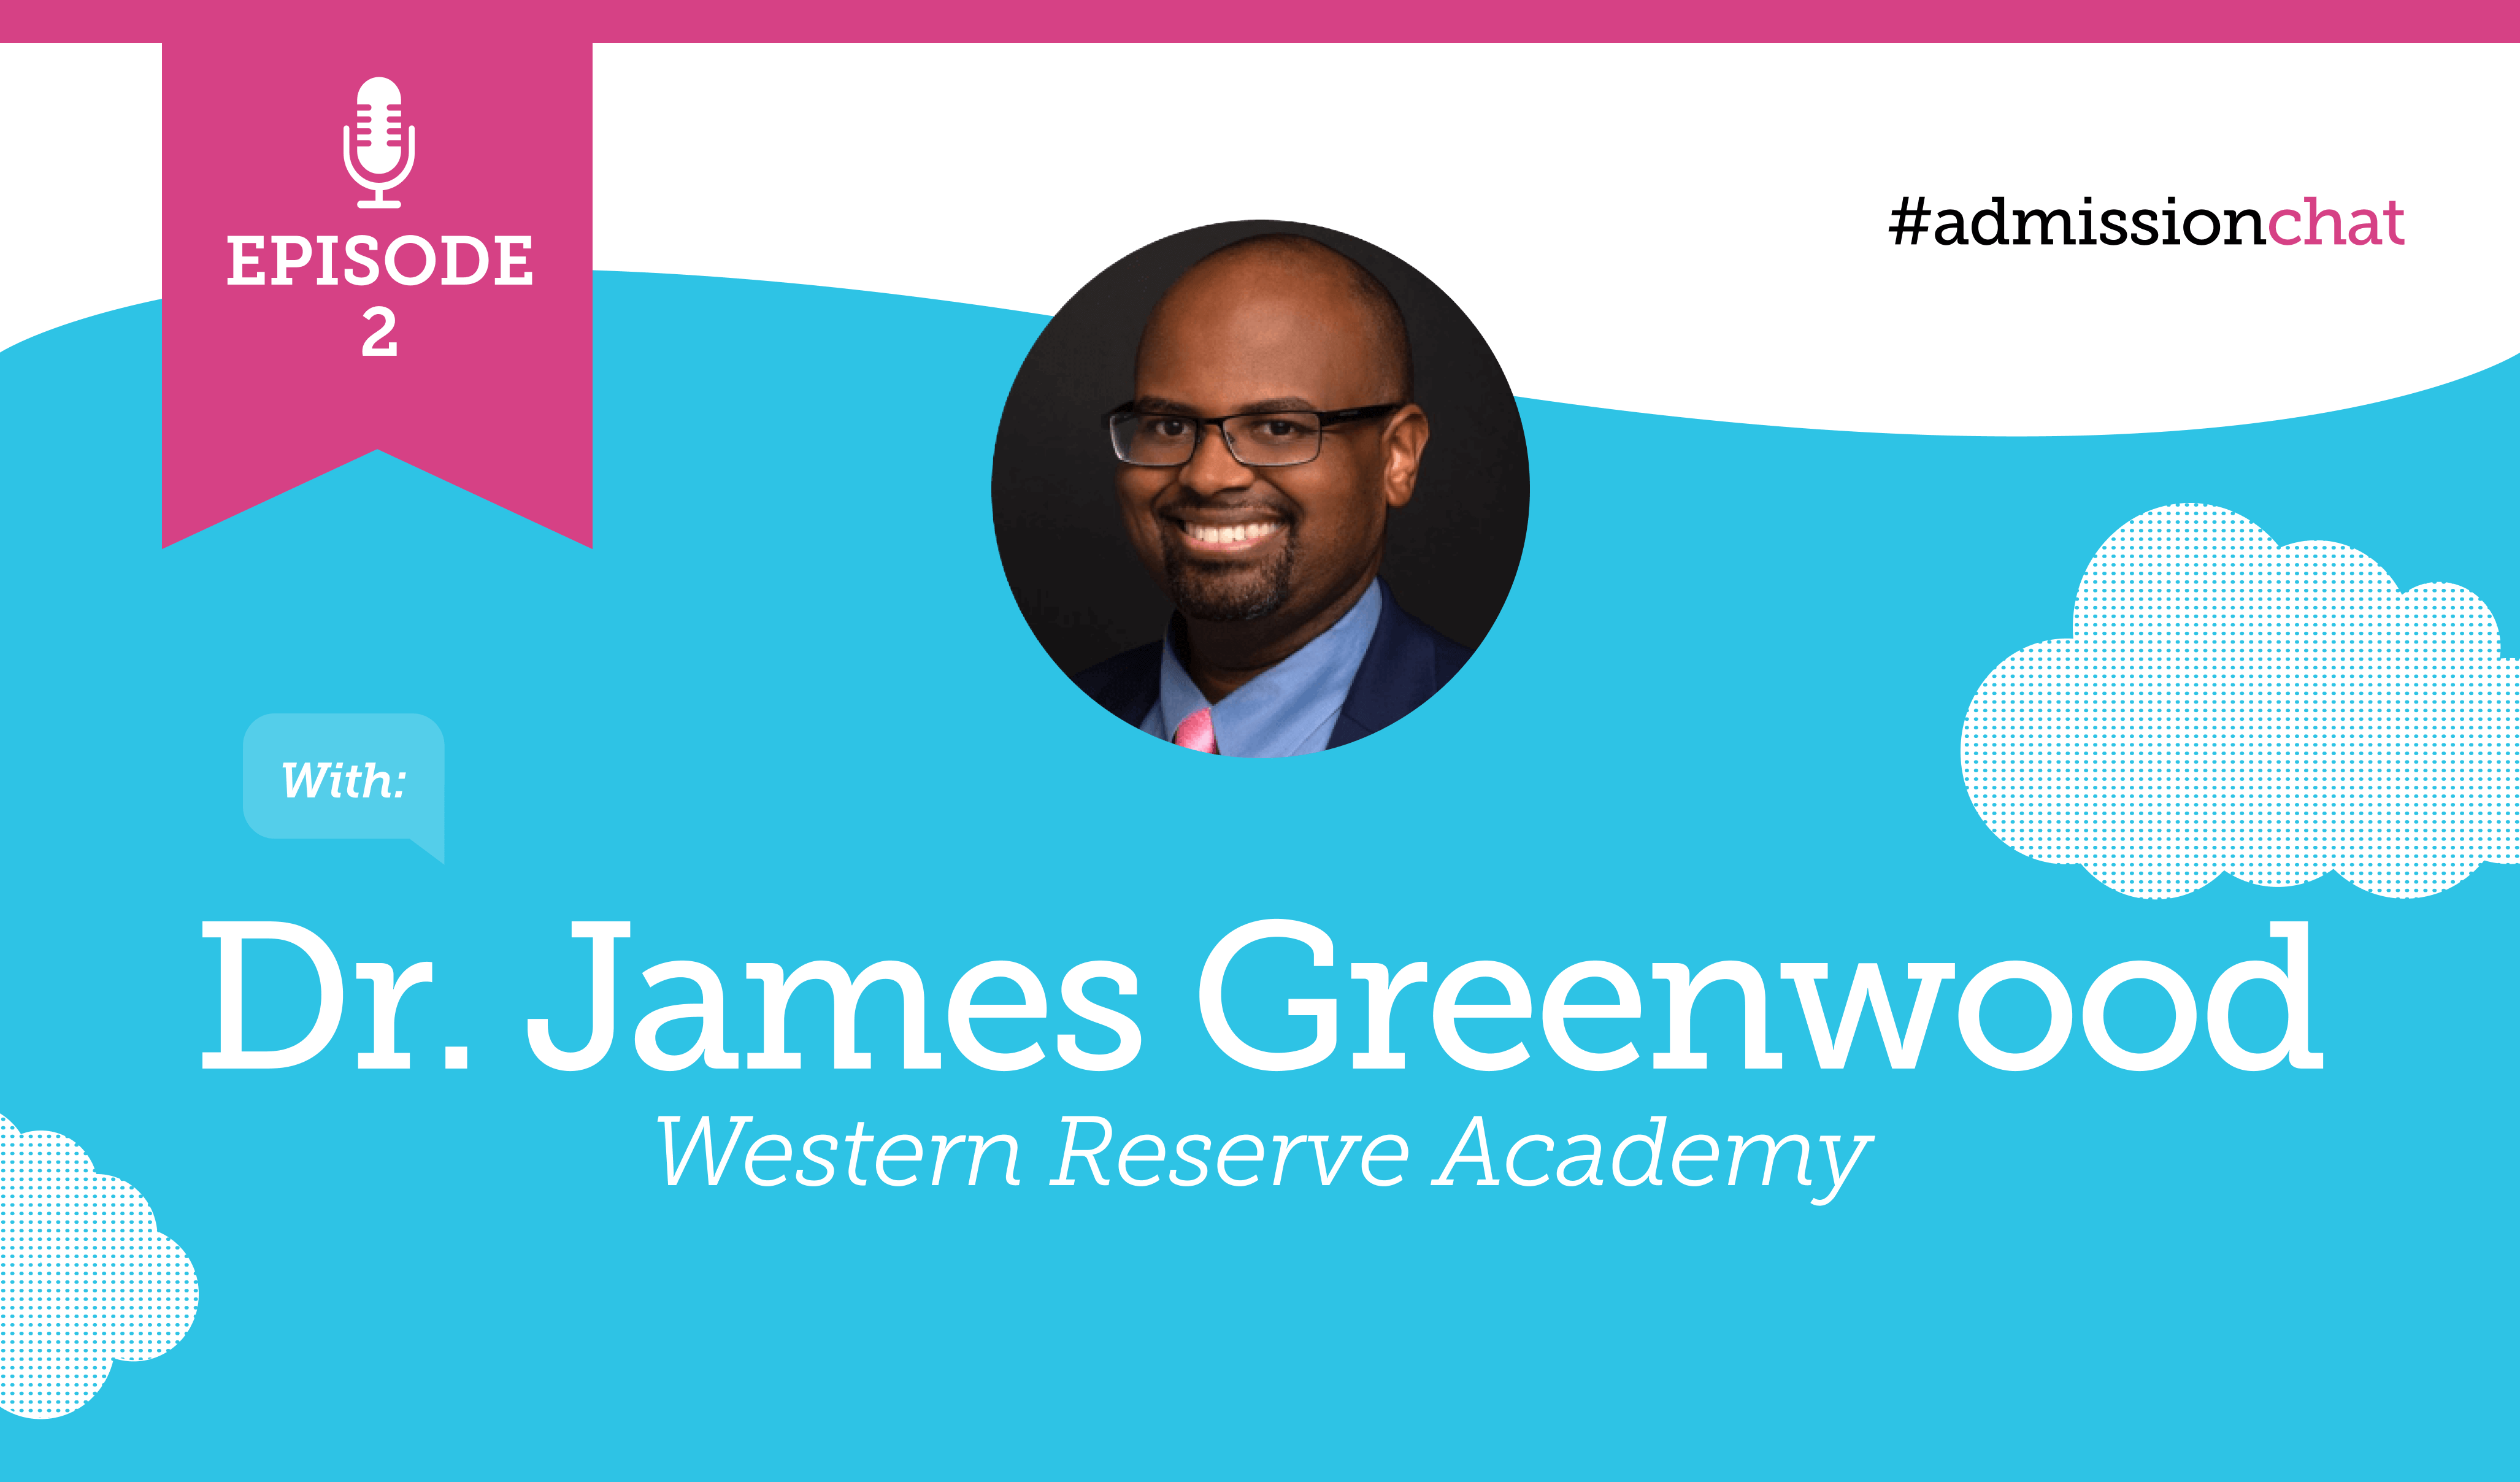 A banner image for #admissionchat featuring Dr. James Greenwood from Western Reserve Academy.